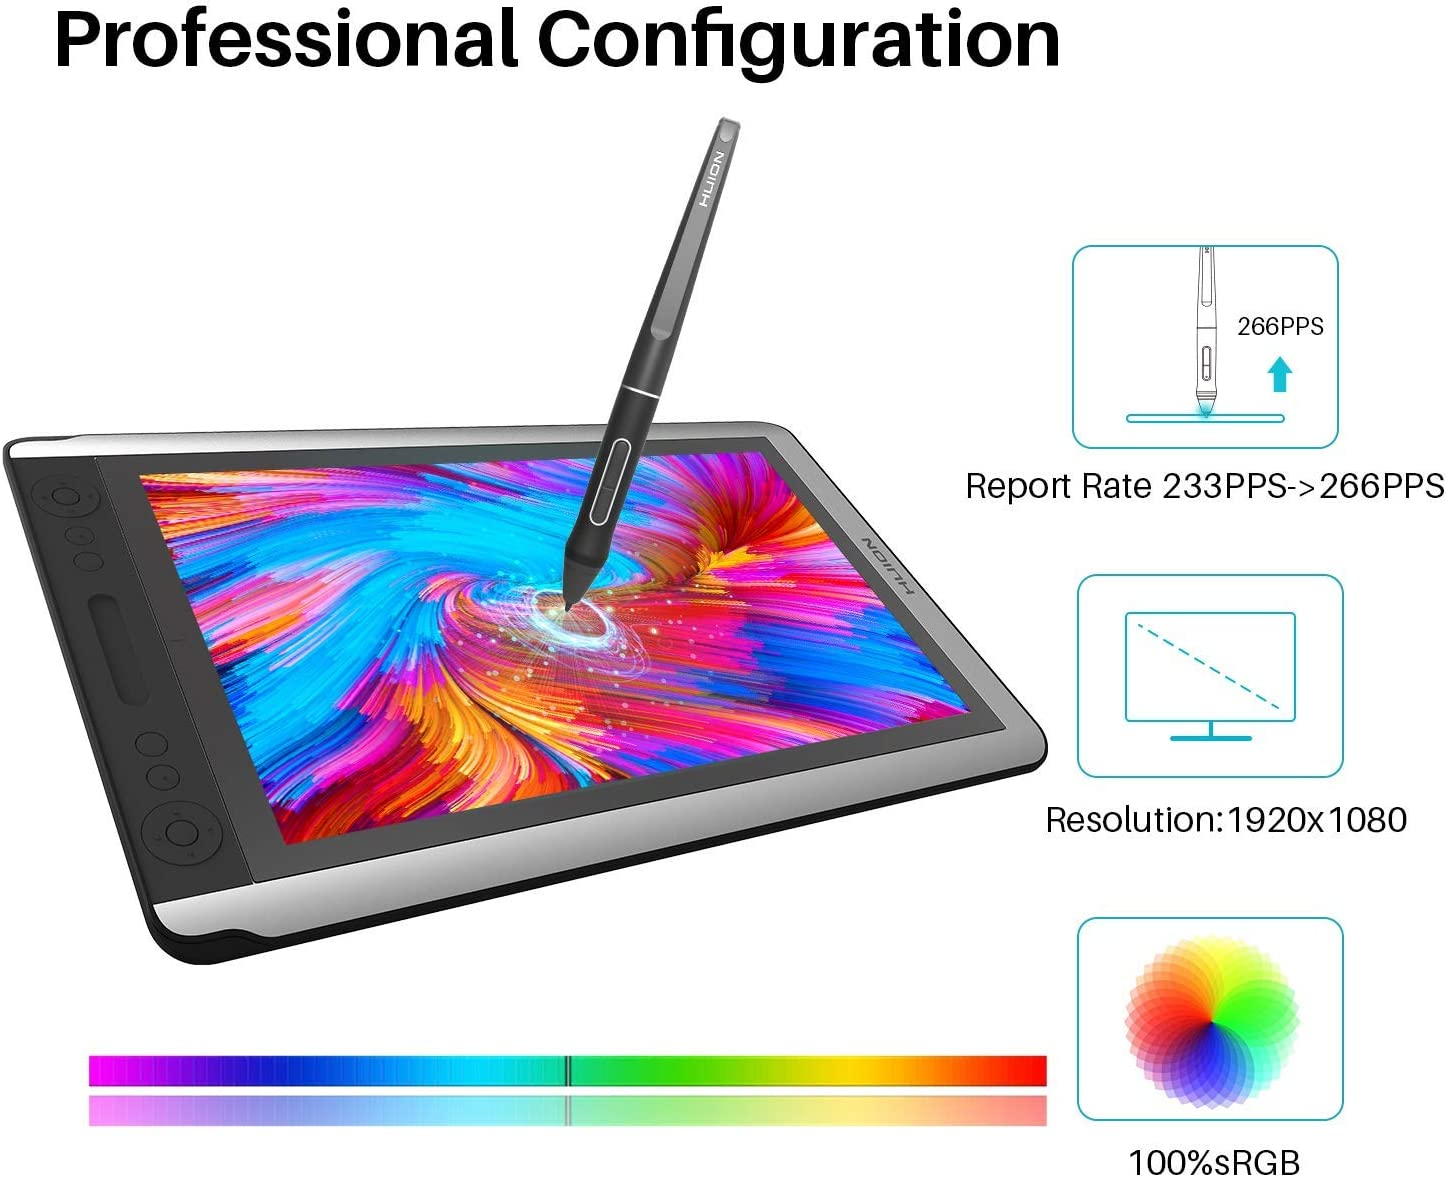 2019 Huion KAMVAS 16 Drawing Pen Display Monitor Graphic Monitor Tilt Function Battery-Free Stylus 8192 Pen Pressure 15.6 Inches